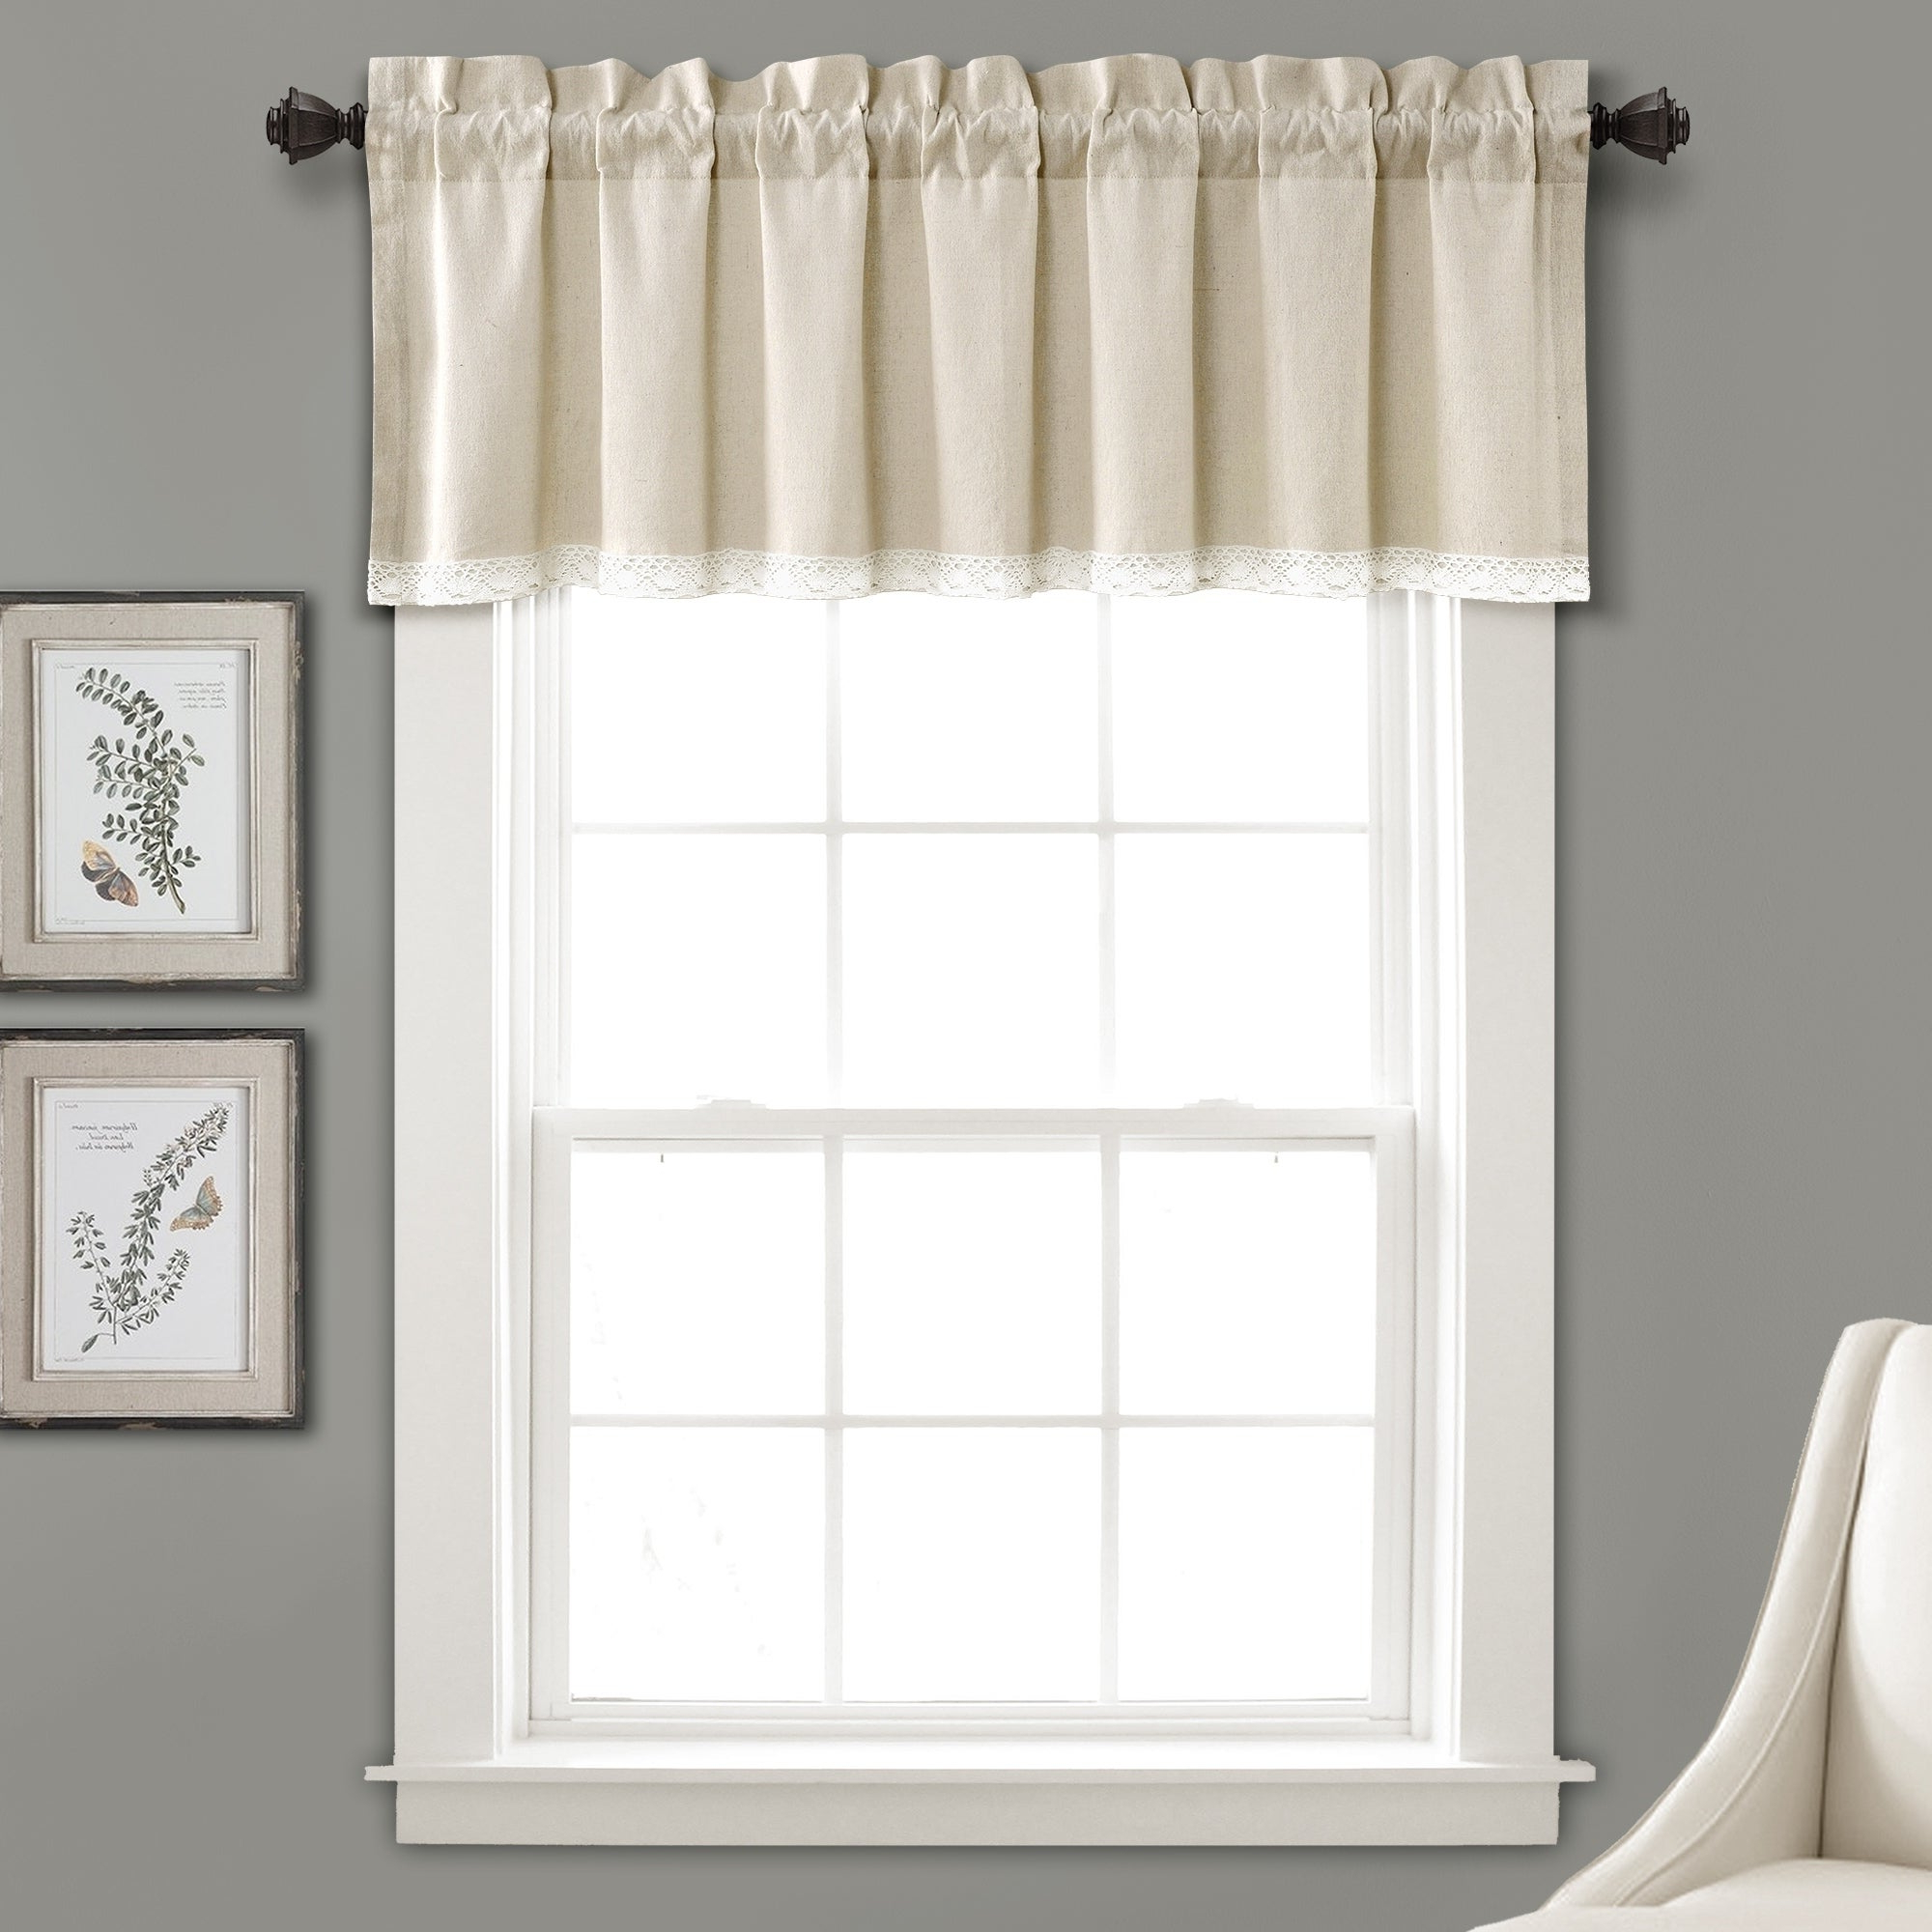 "Lush Decor Linen Lace Window Curtain Valance – 52""w X 18""l With Recent Hudson Pintuck Window Curtain Valances (View 8 of 20)"